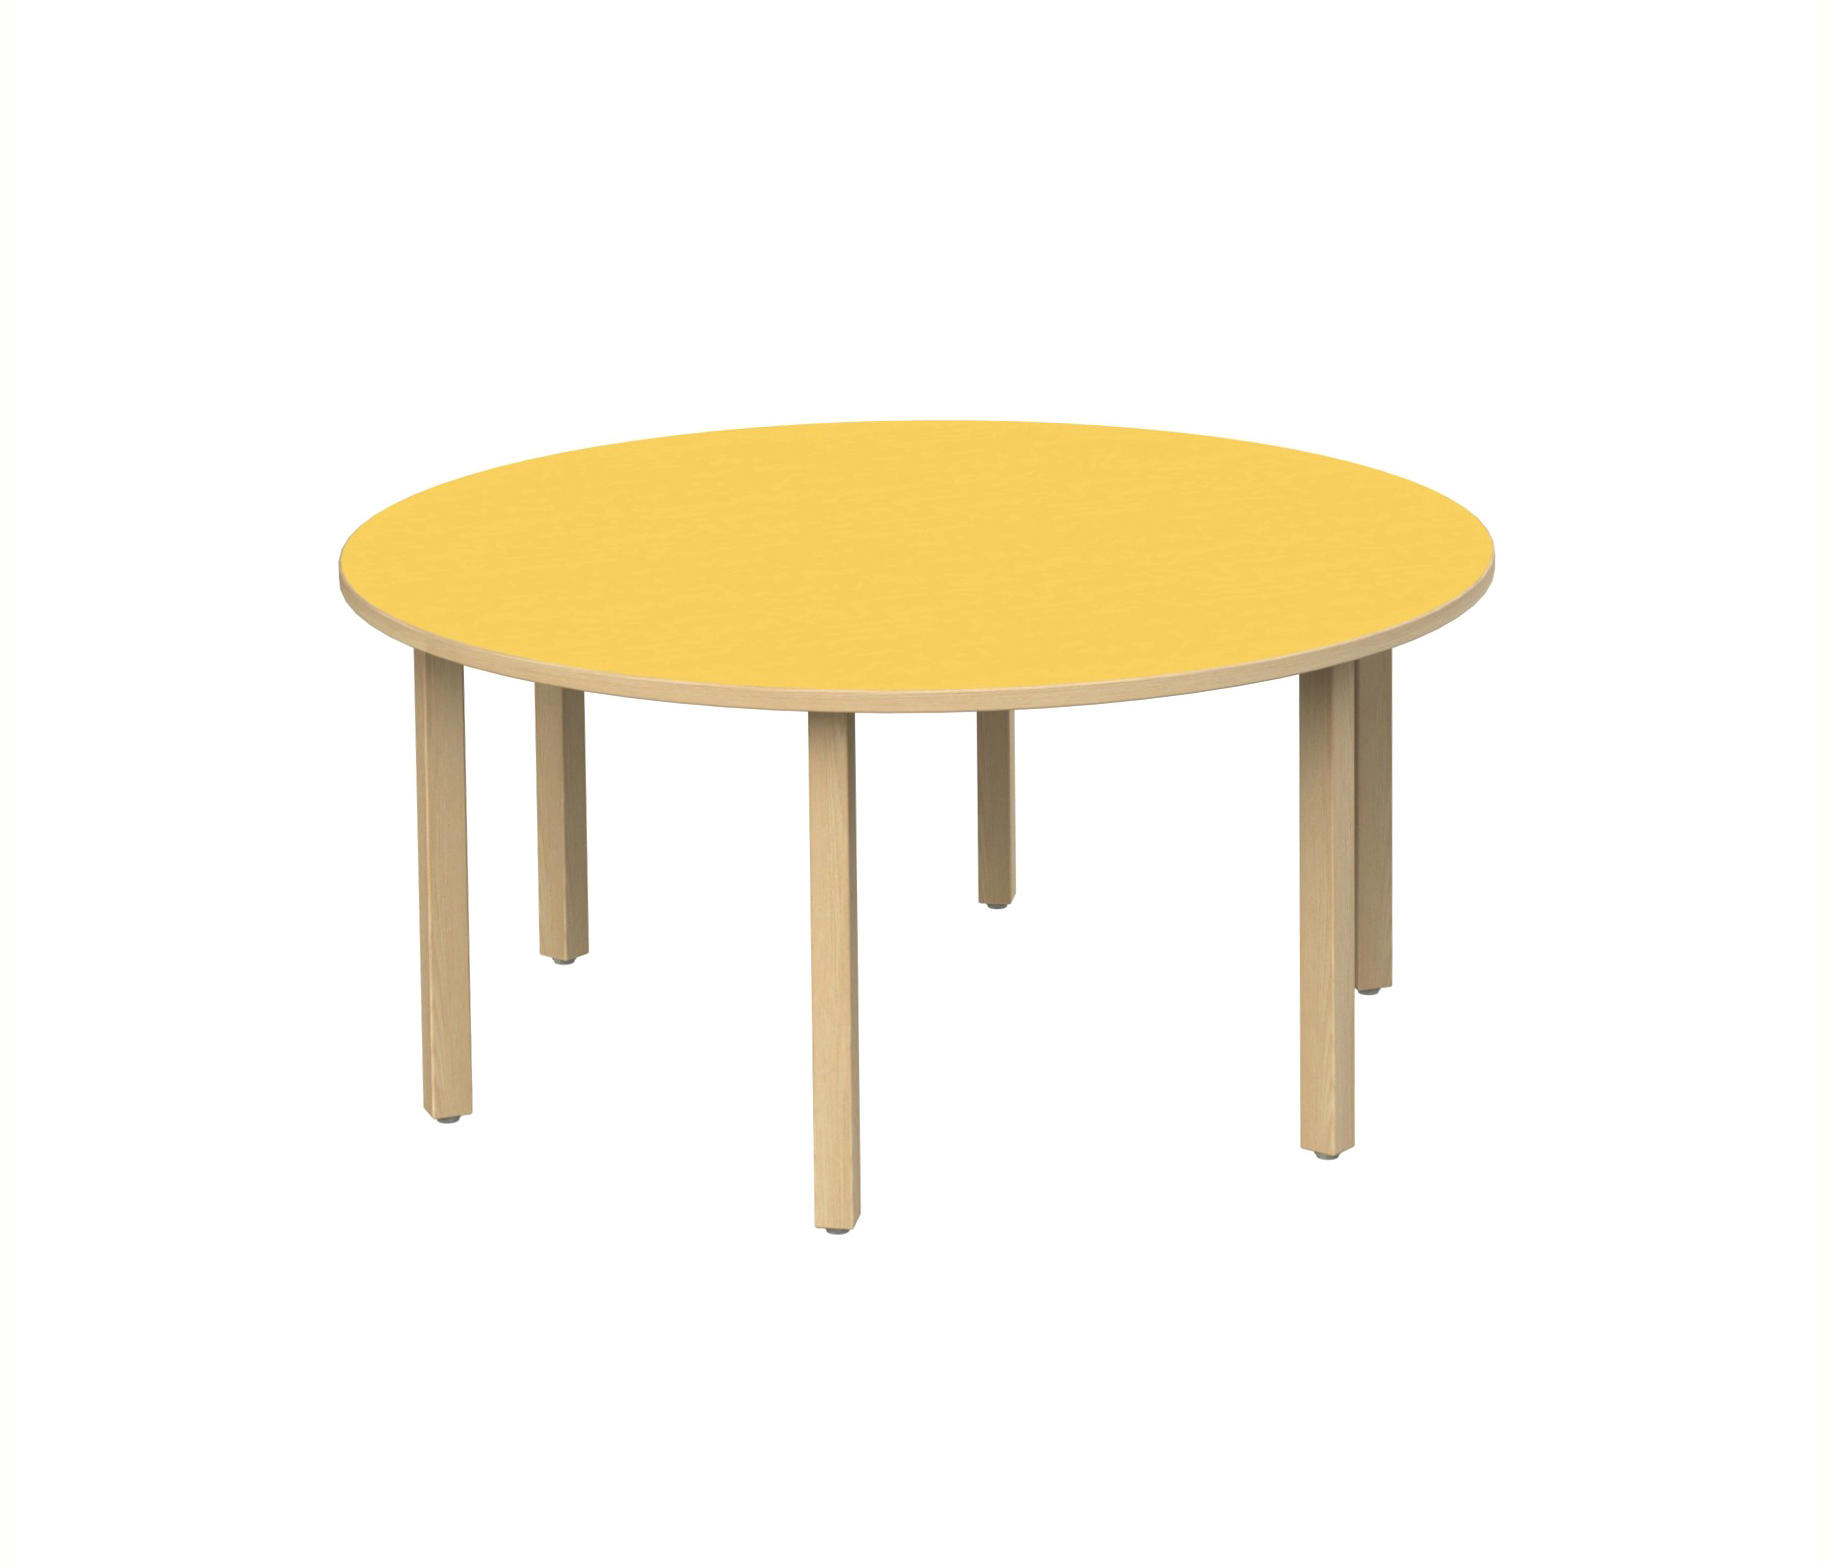 TABLE FOR CHILDREN 1200-L60S - Kids tables from Woodi  Architonic